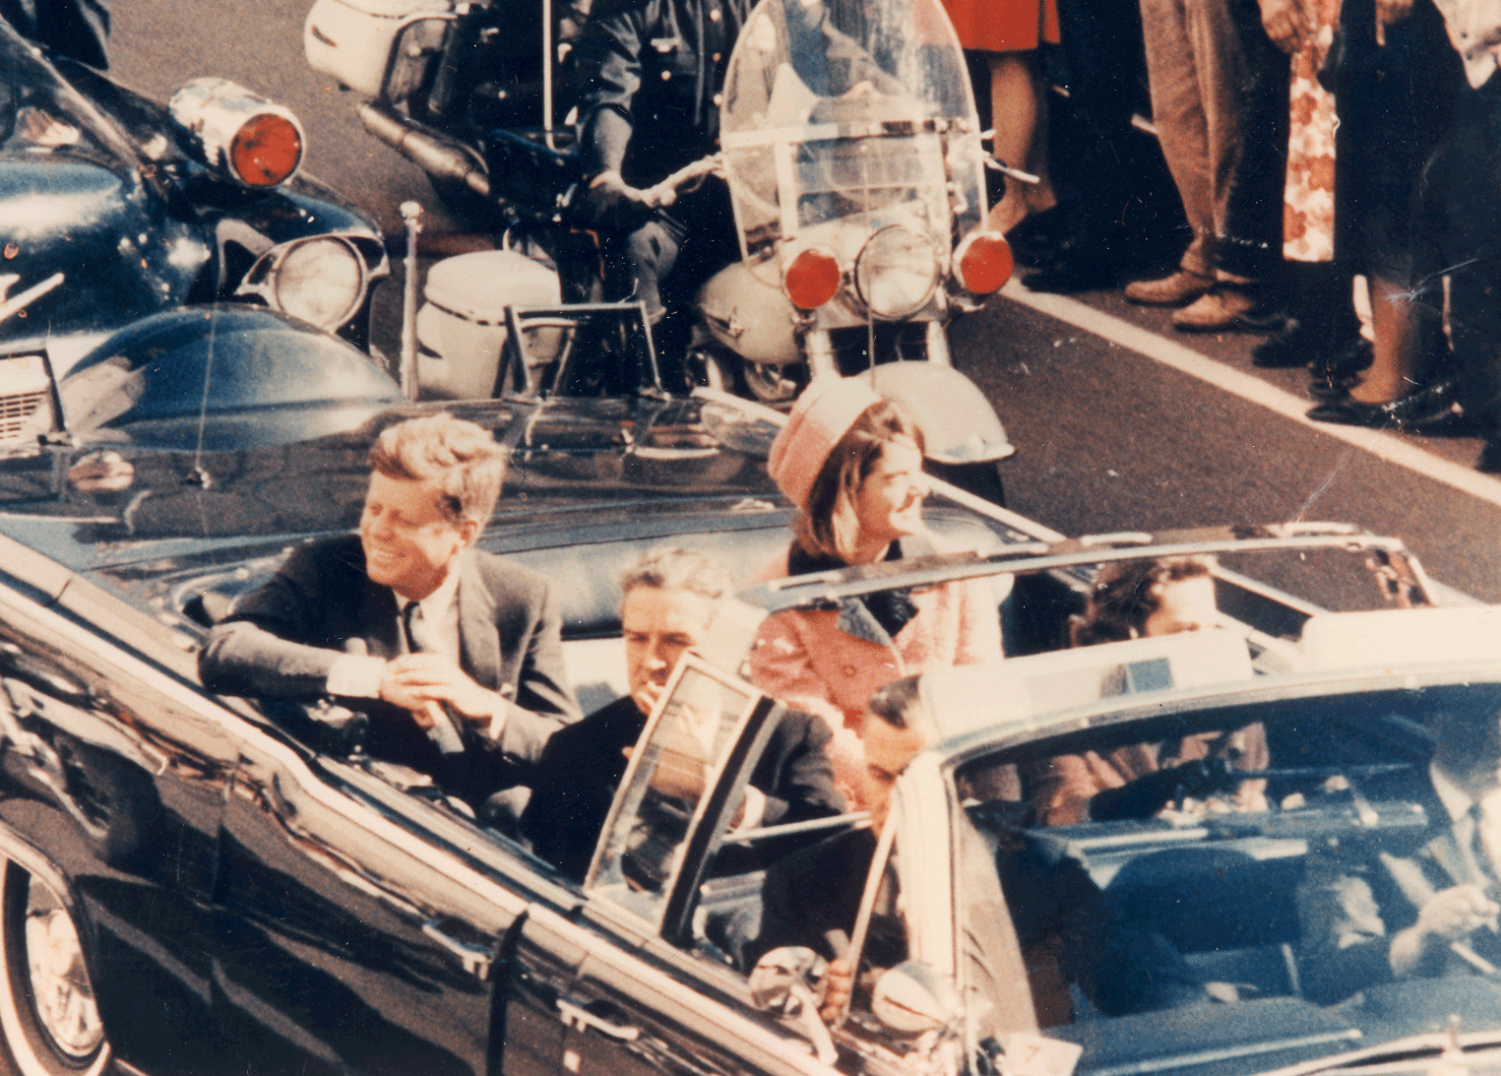 President Kennedy riding through Dallas moments before he was assassinated on Nov. 22, 1963.